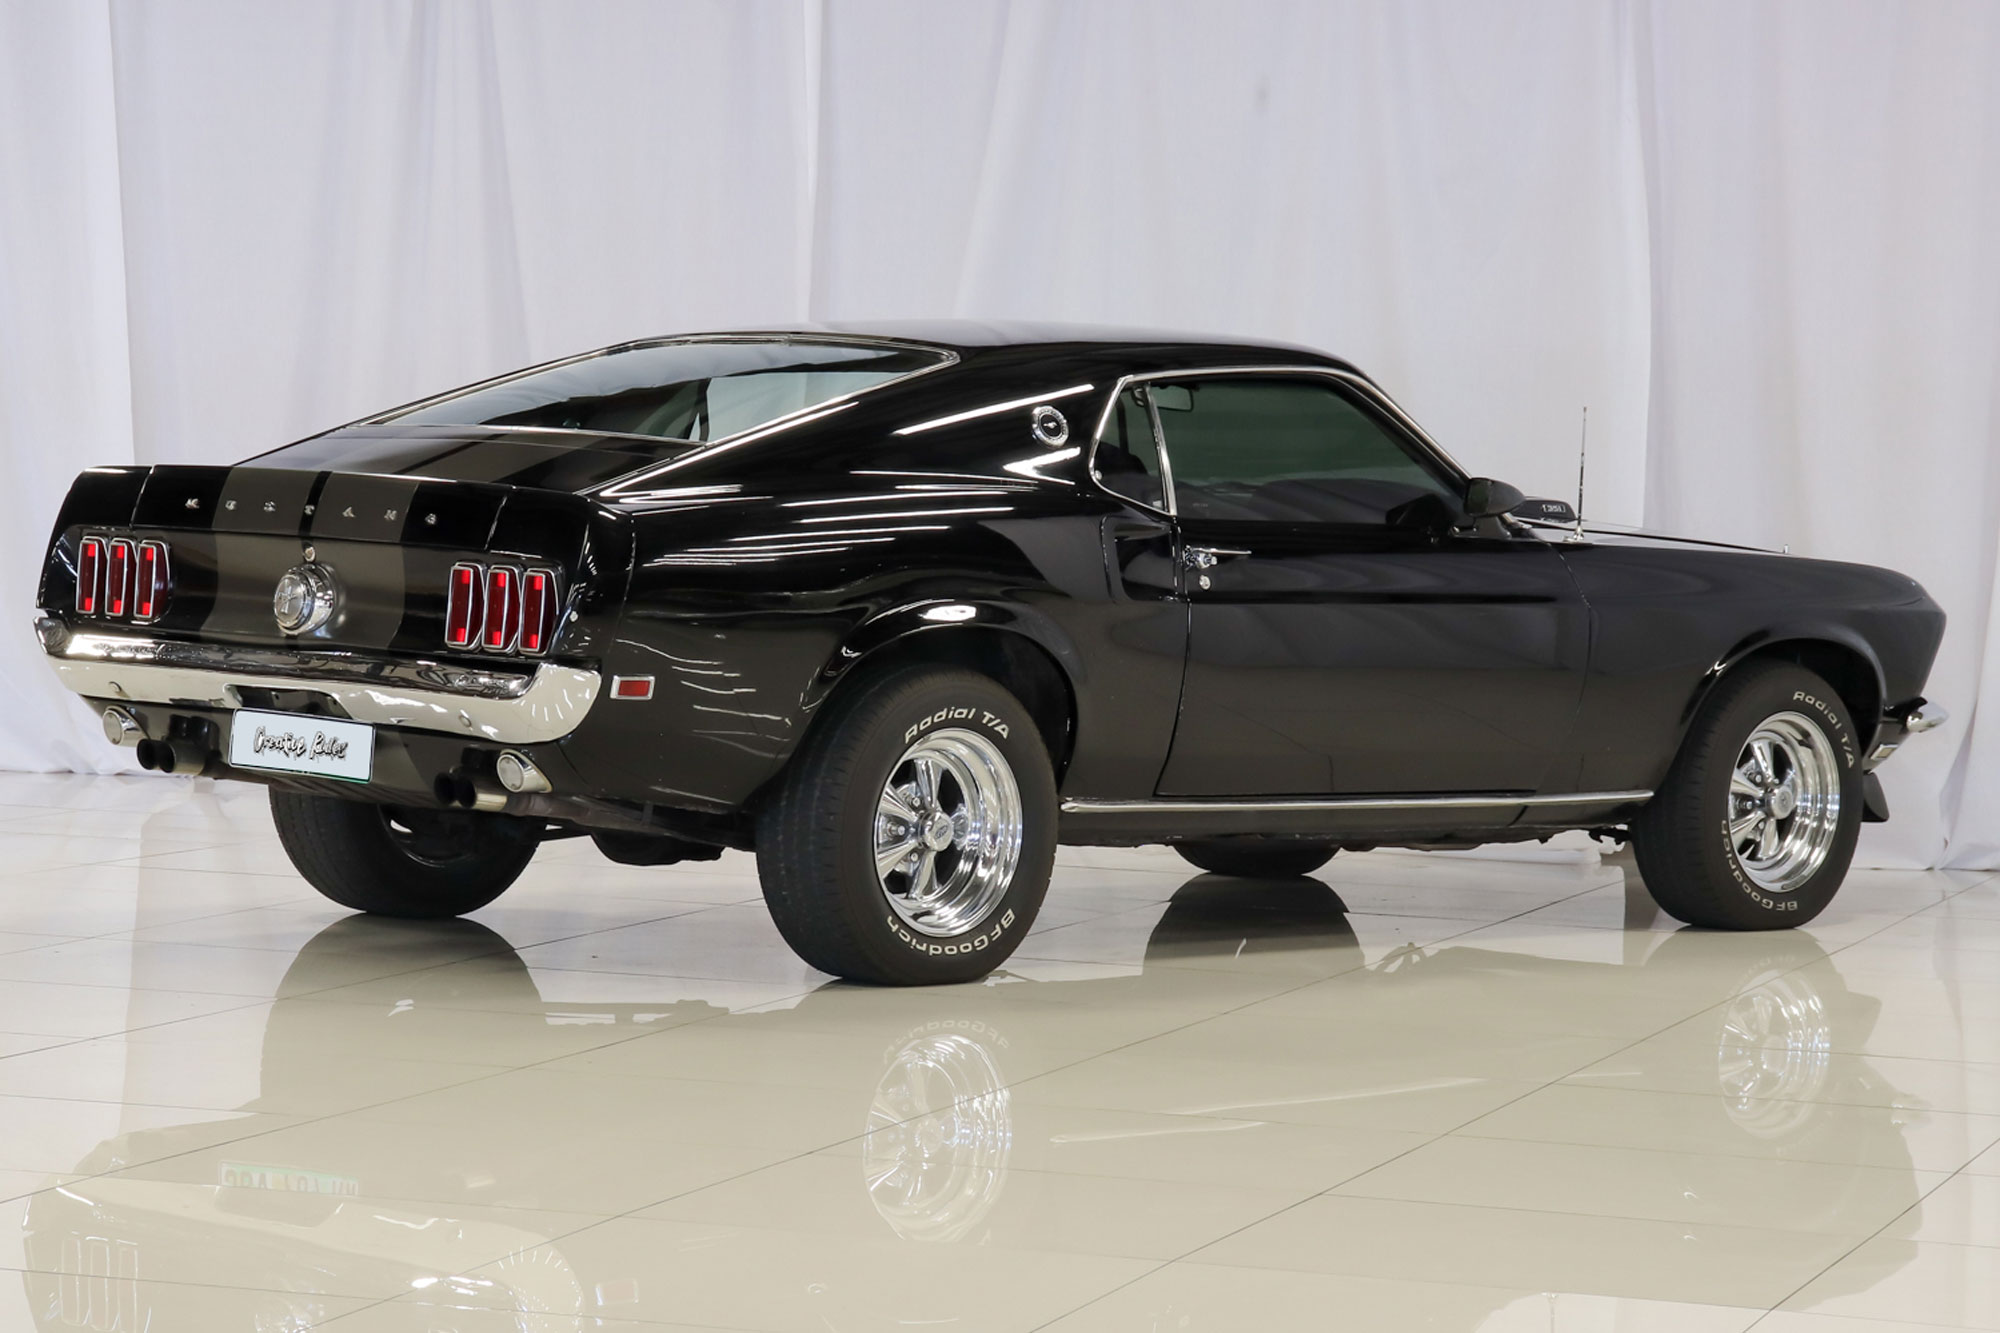 1969 Ford Mustang Fastback Mach 1 Creative Rides 2 Sold